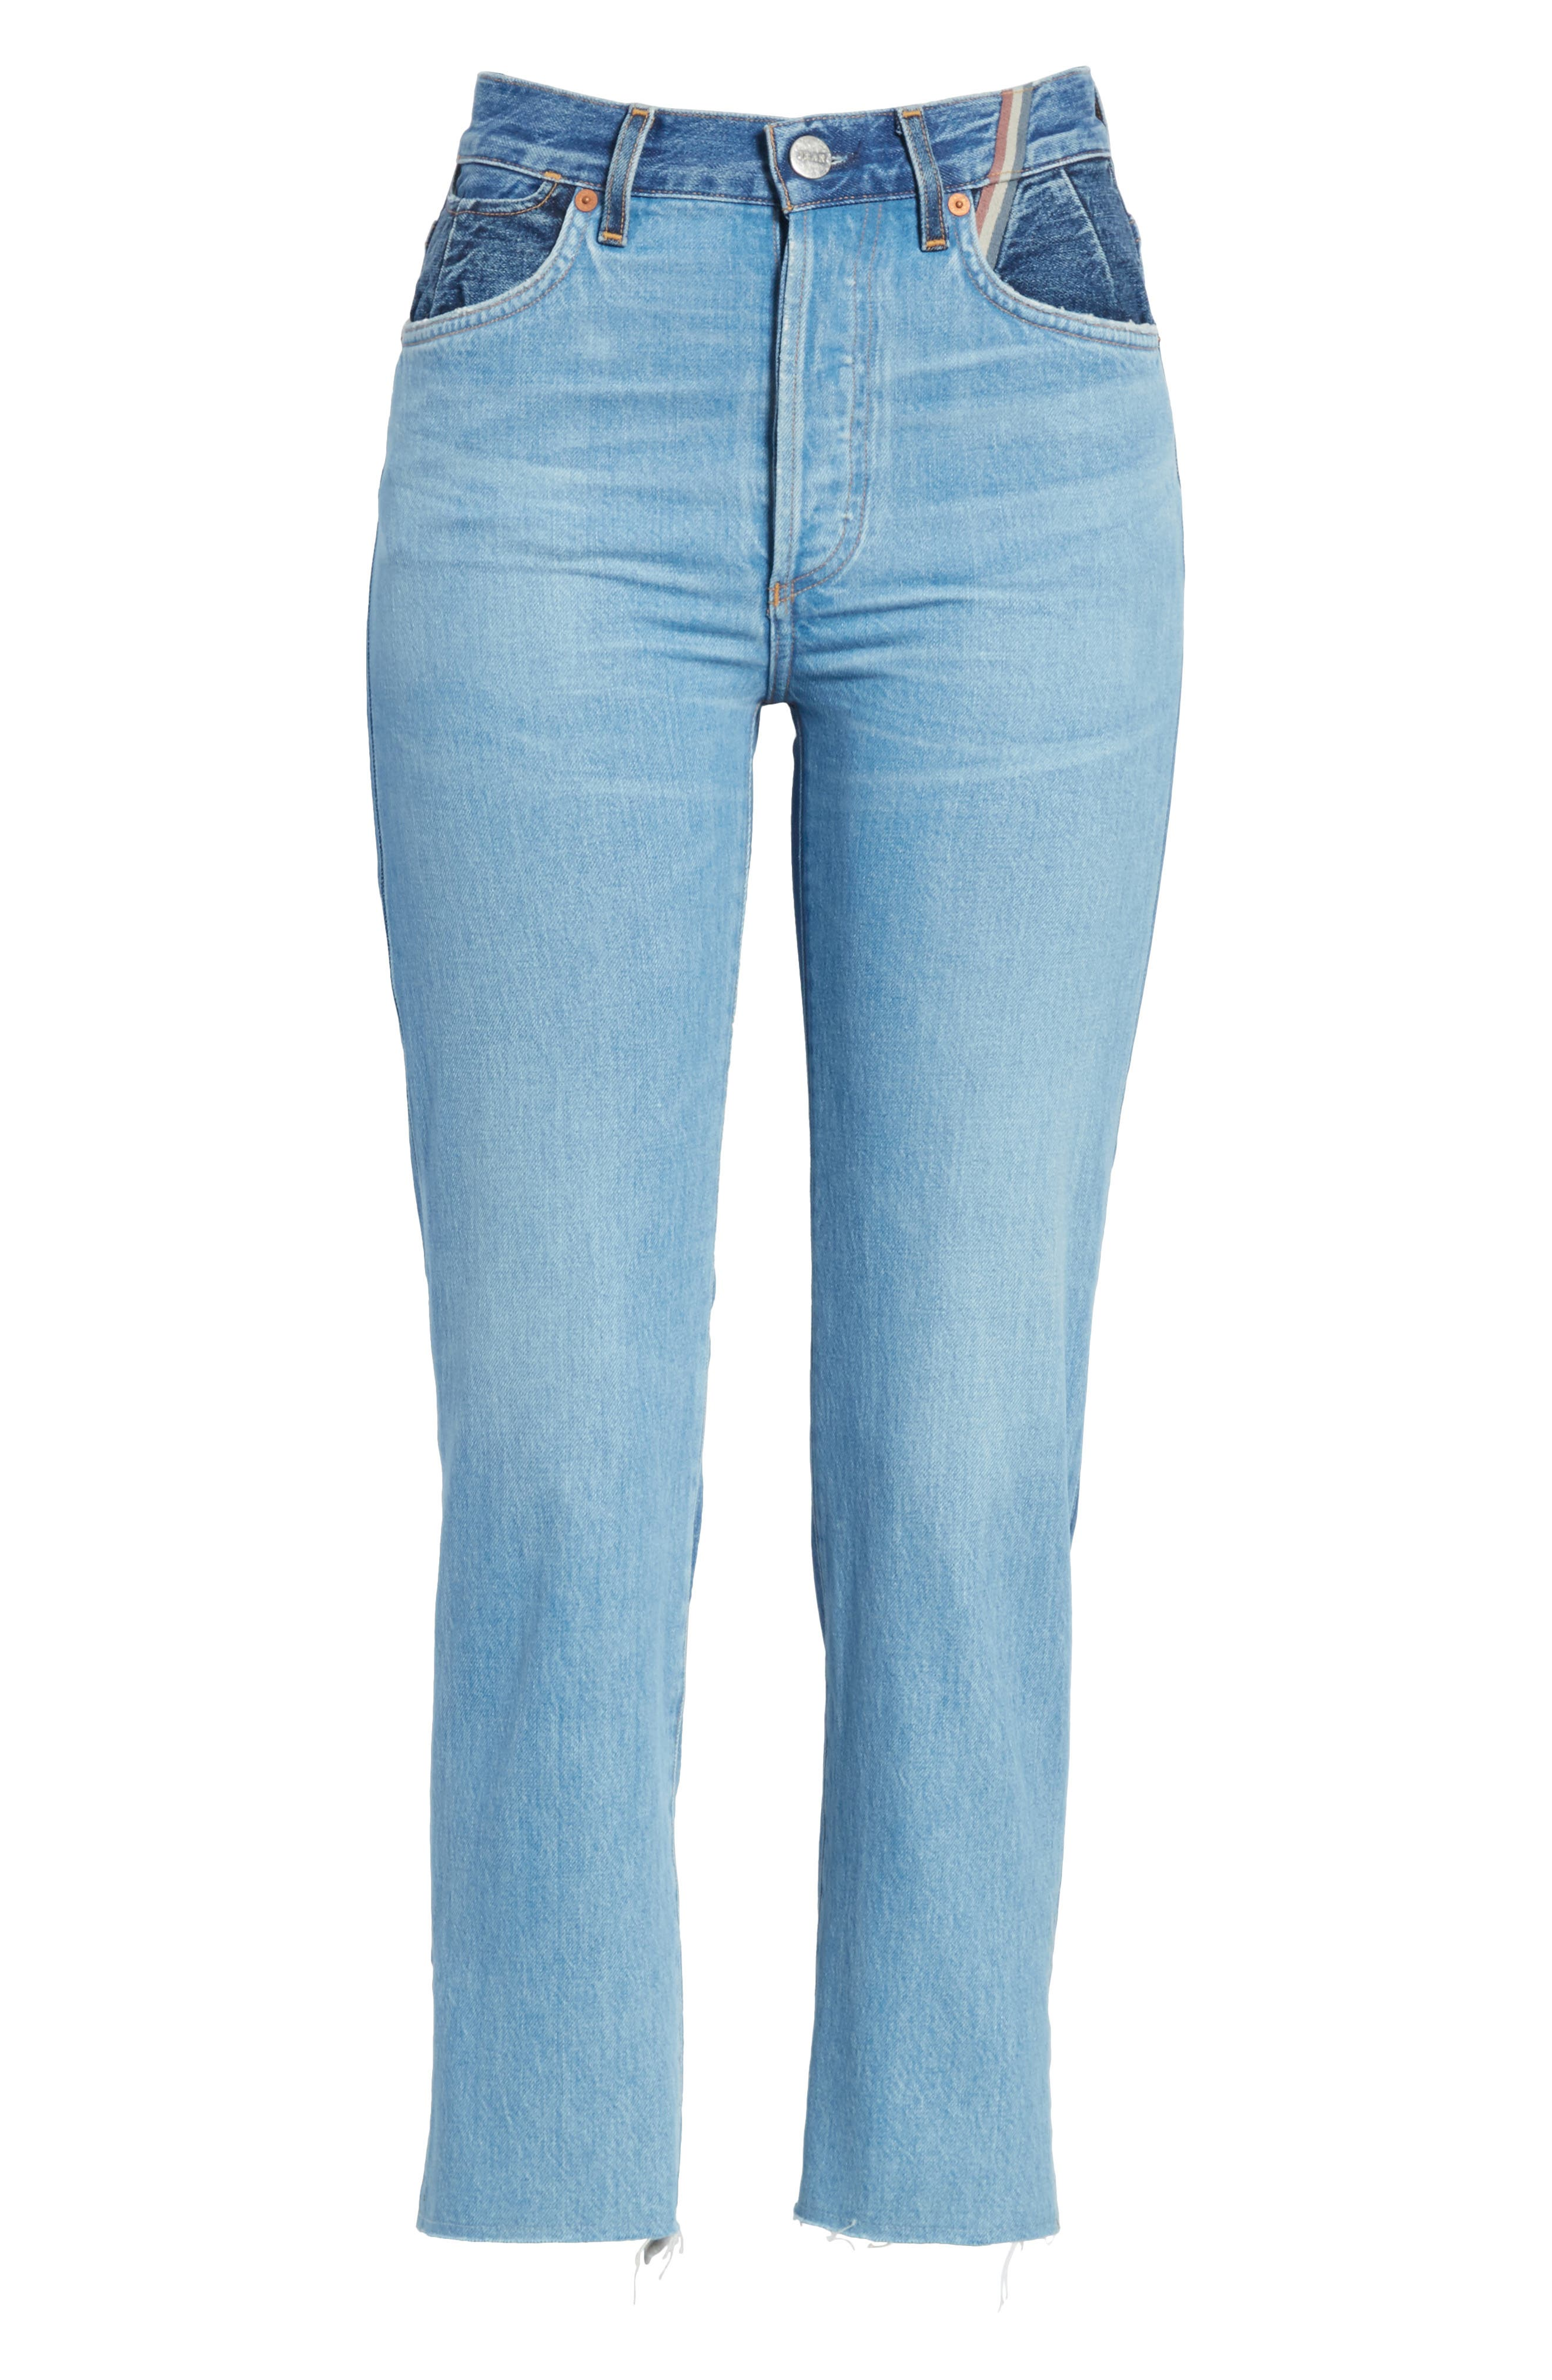 Hunter High Rise Straight Leg Crop Jeans,                             Alternate thumbnail 7, color,                             Jagger